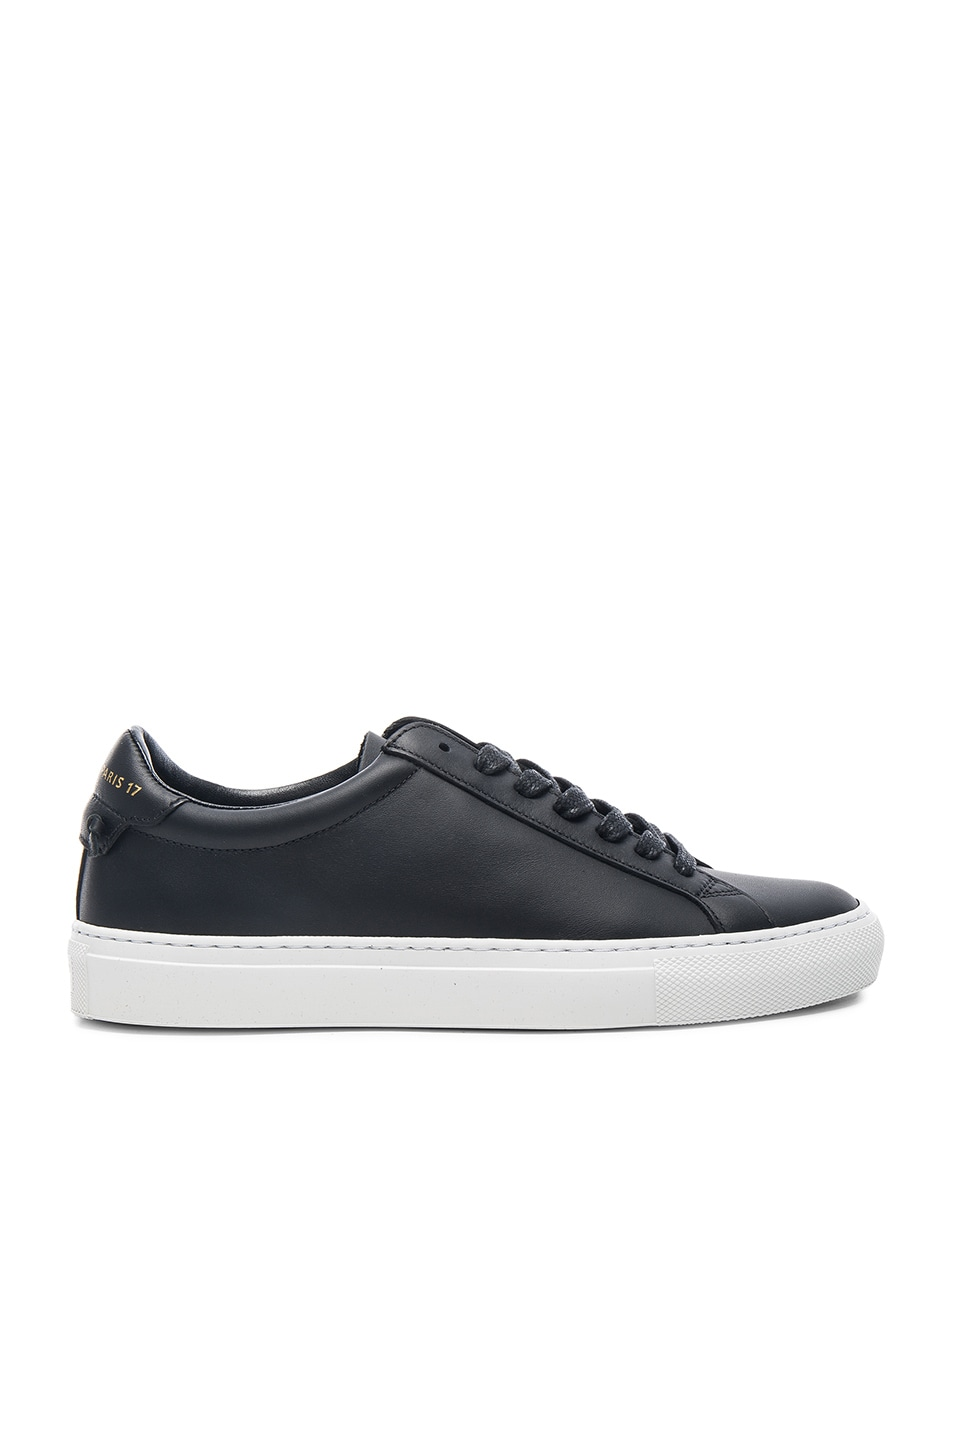 Image 1 of Givenchy Knots Leather Low Sneakers in Black